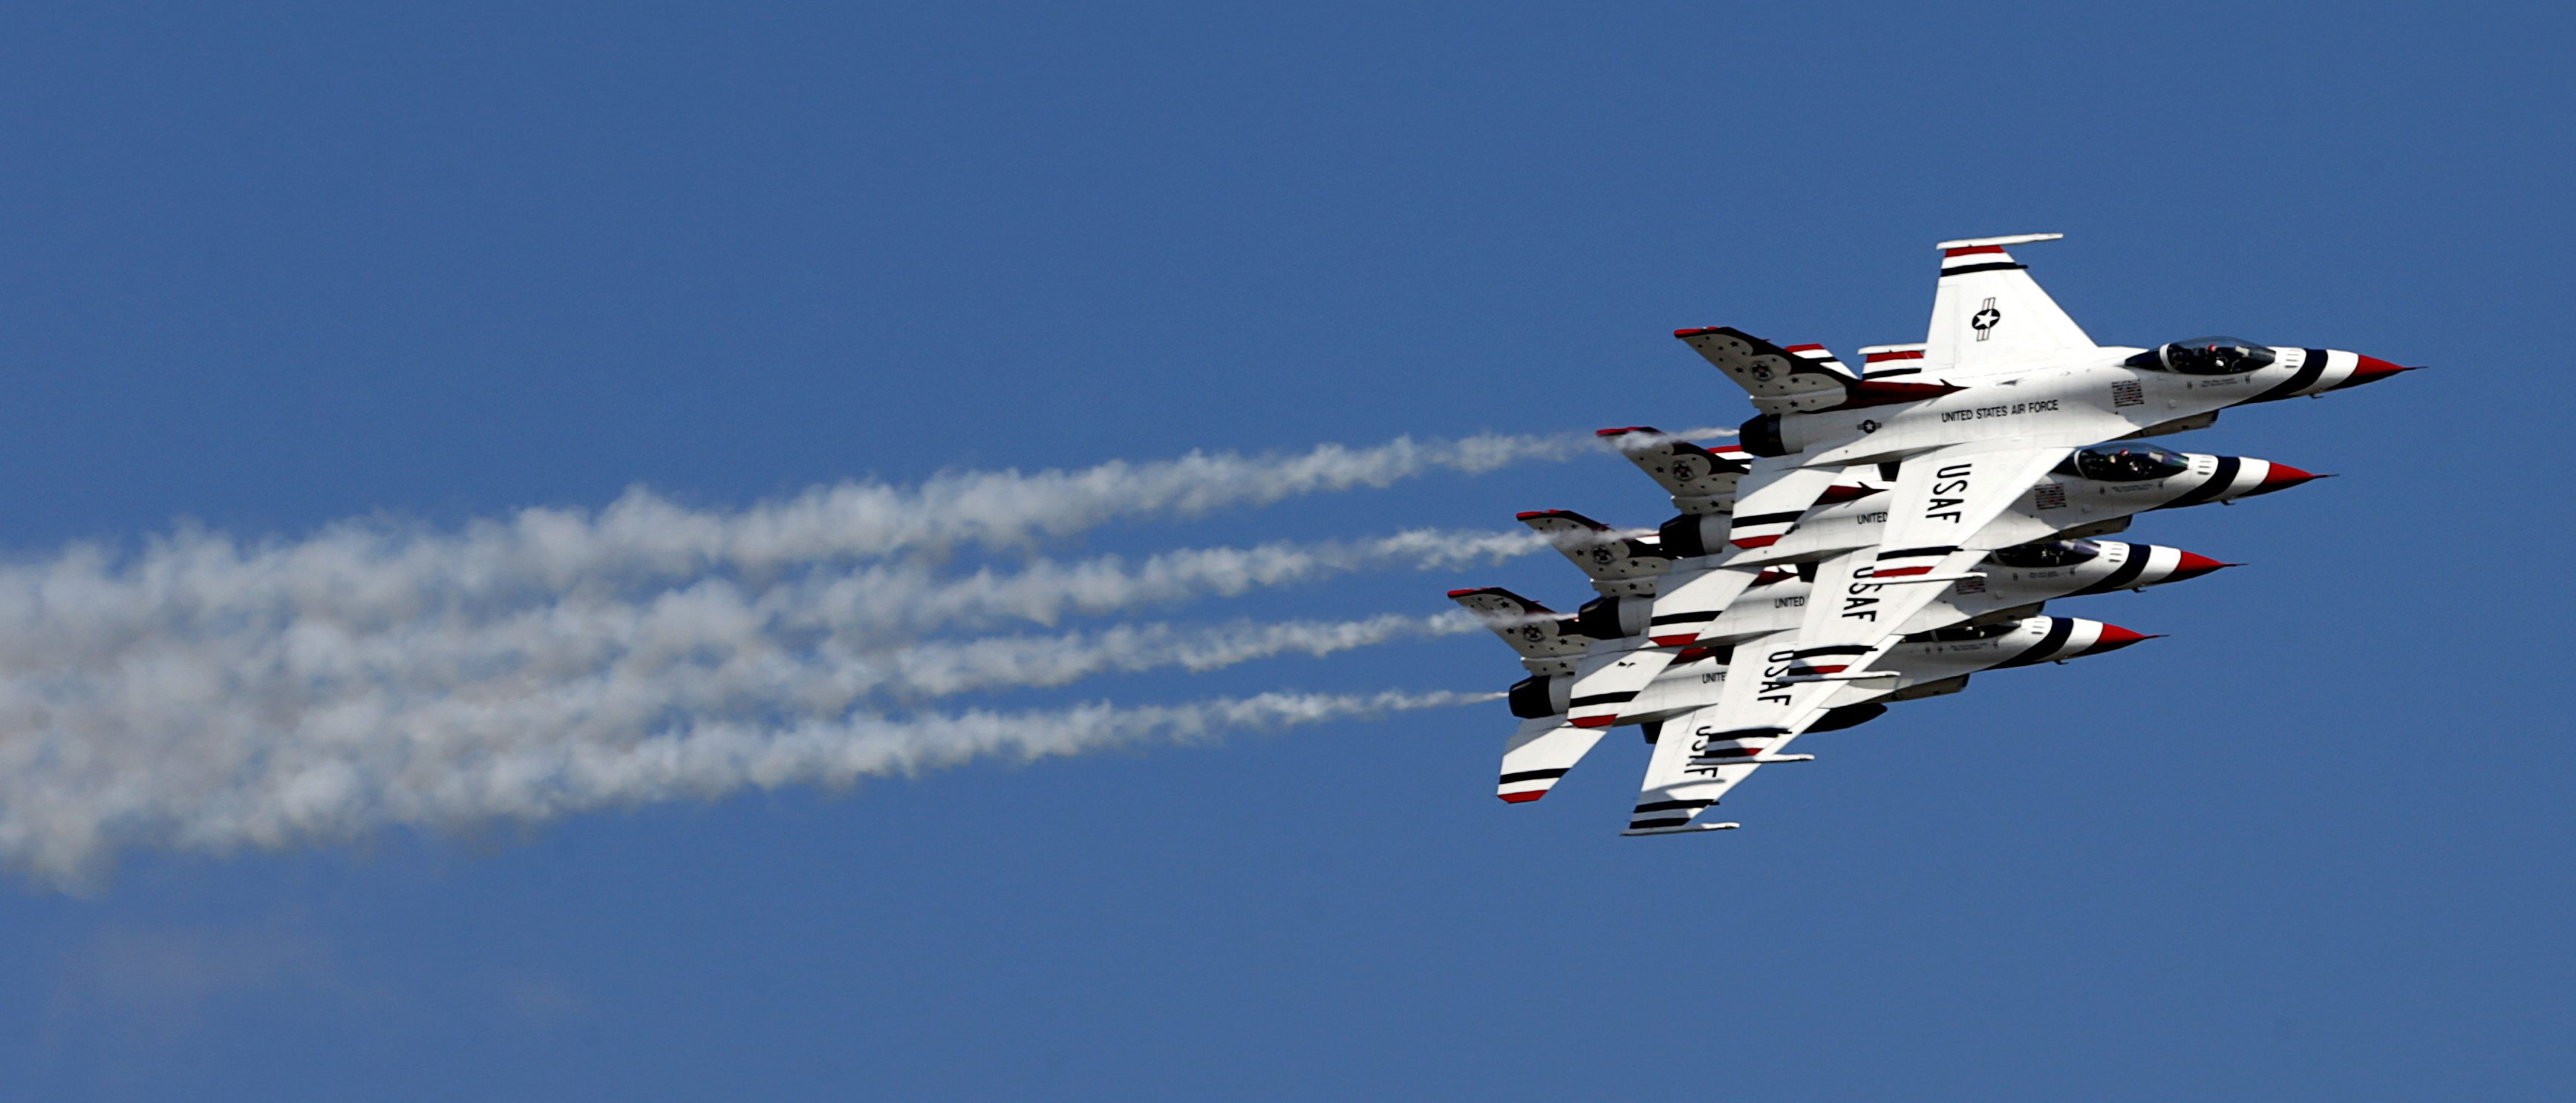 The Thunderbirds perform during the Joint Base Andrews Air Show in Washington, September 18, 2015. REUTERS/Kevin Lamarque  - RTS1SY6